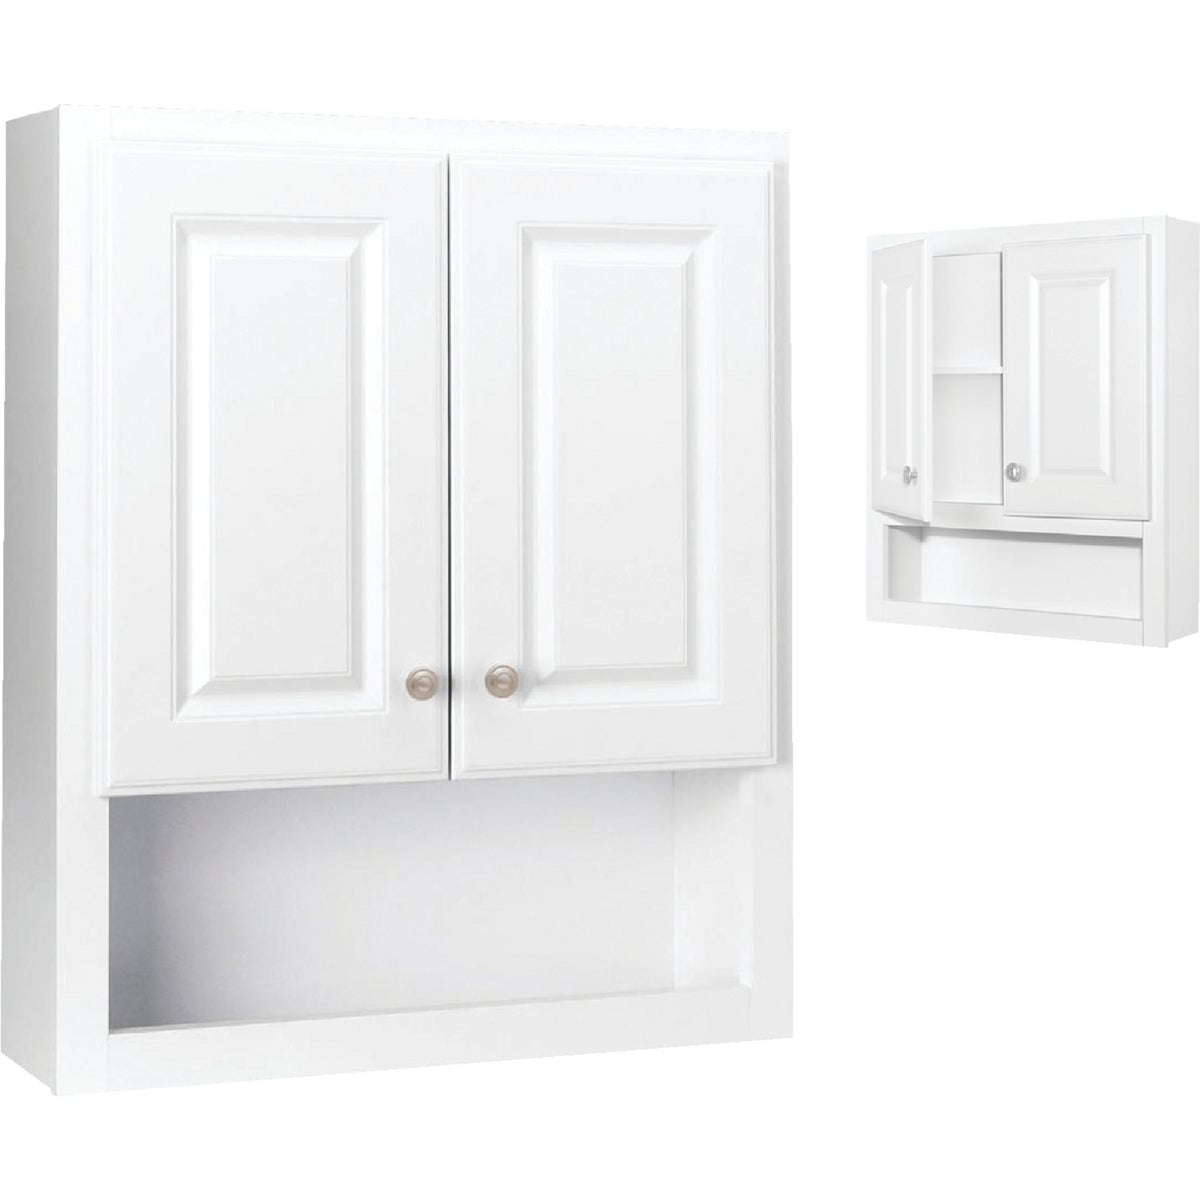 WHITE WALL CABINET - 531715 by Design House  Dhi